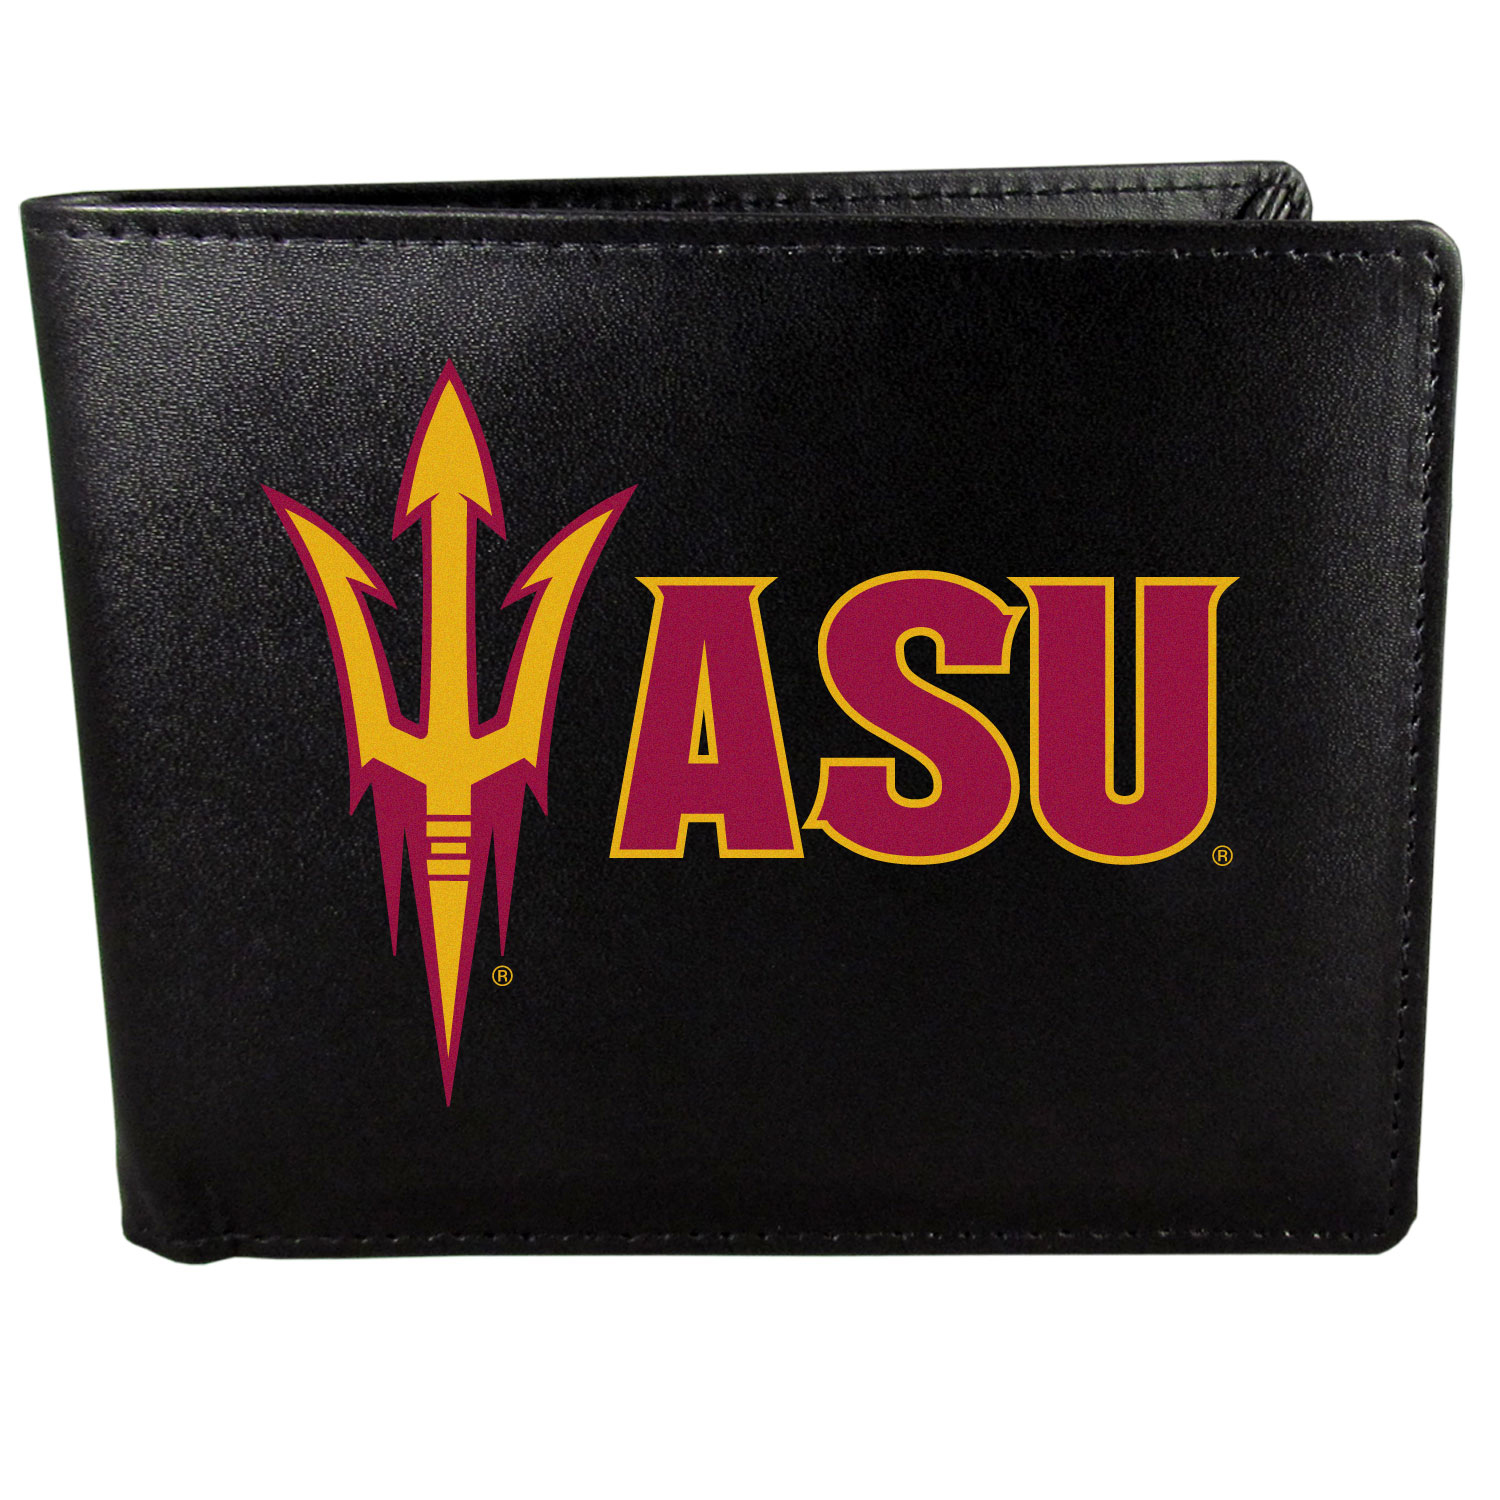 Arizona St. Sun Devils Leather Bi-fold Wallet, Large Logo - Our classic fine leather bi-fold wallet is meticulously crafted with genuine leather that will age beautifully so you will have a quality wallet for years to come. The wallet opens to a large, billfold pocket and numerous credit card slots and has a convenient windowed ID slot. The front of the wallet features an extra large Arizona St. Sun Devils printed logo.